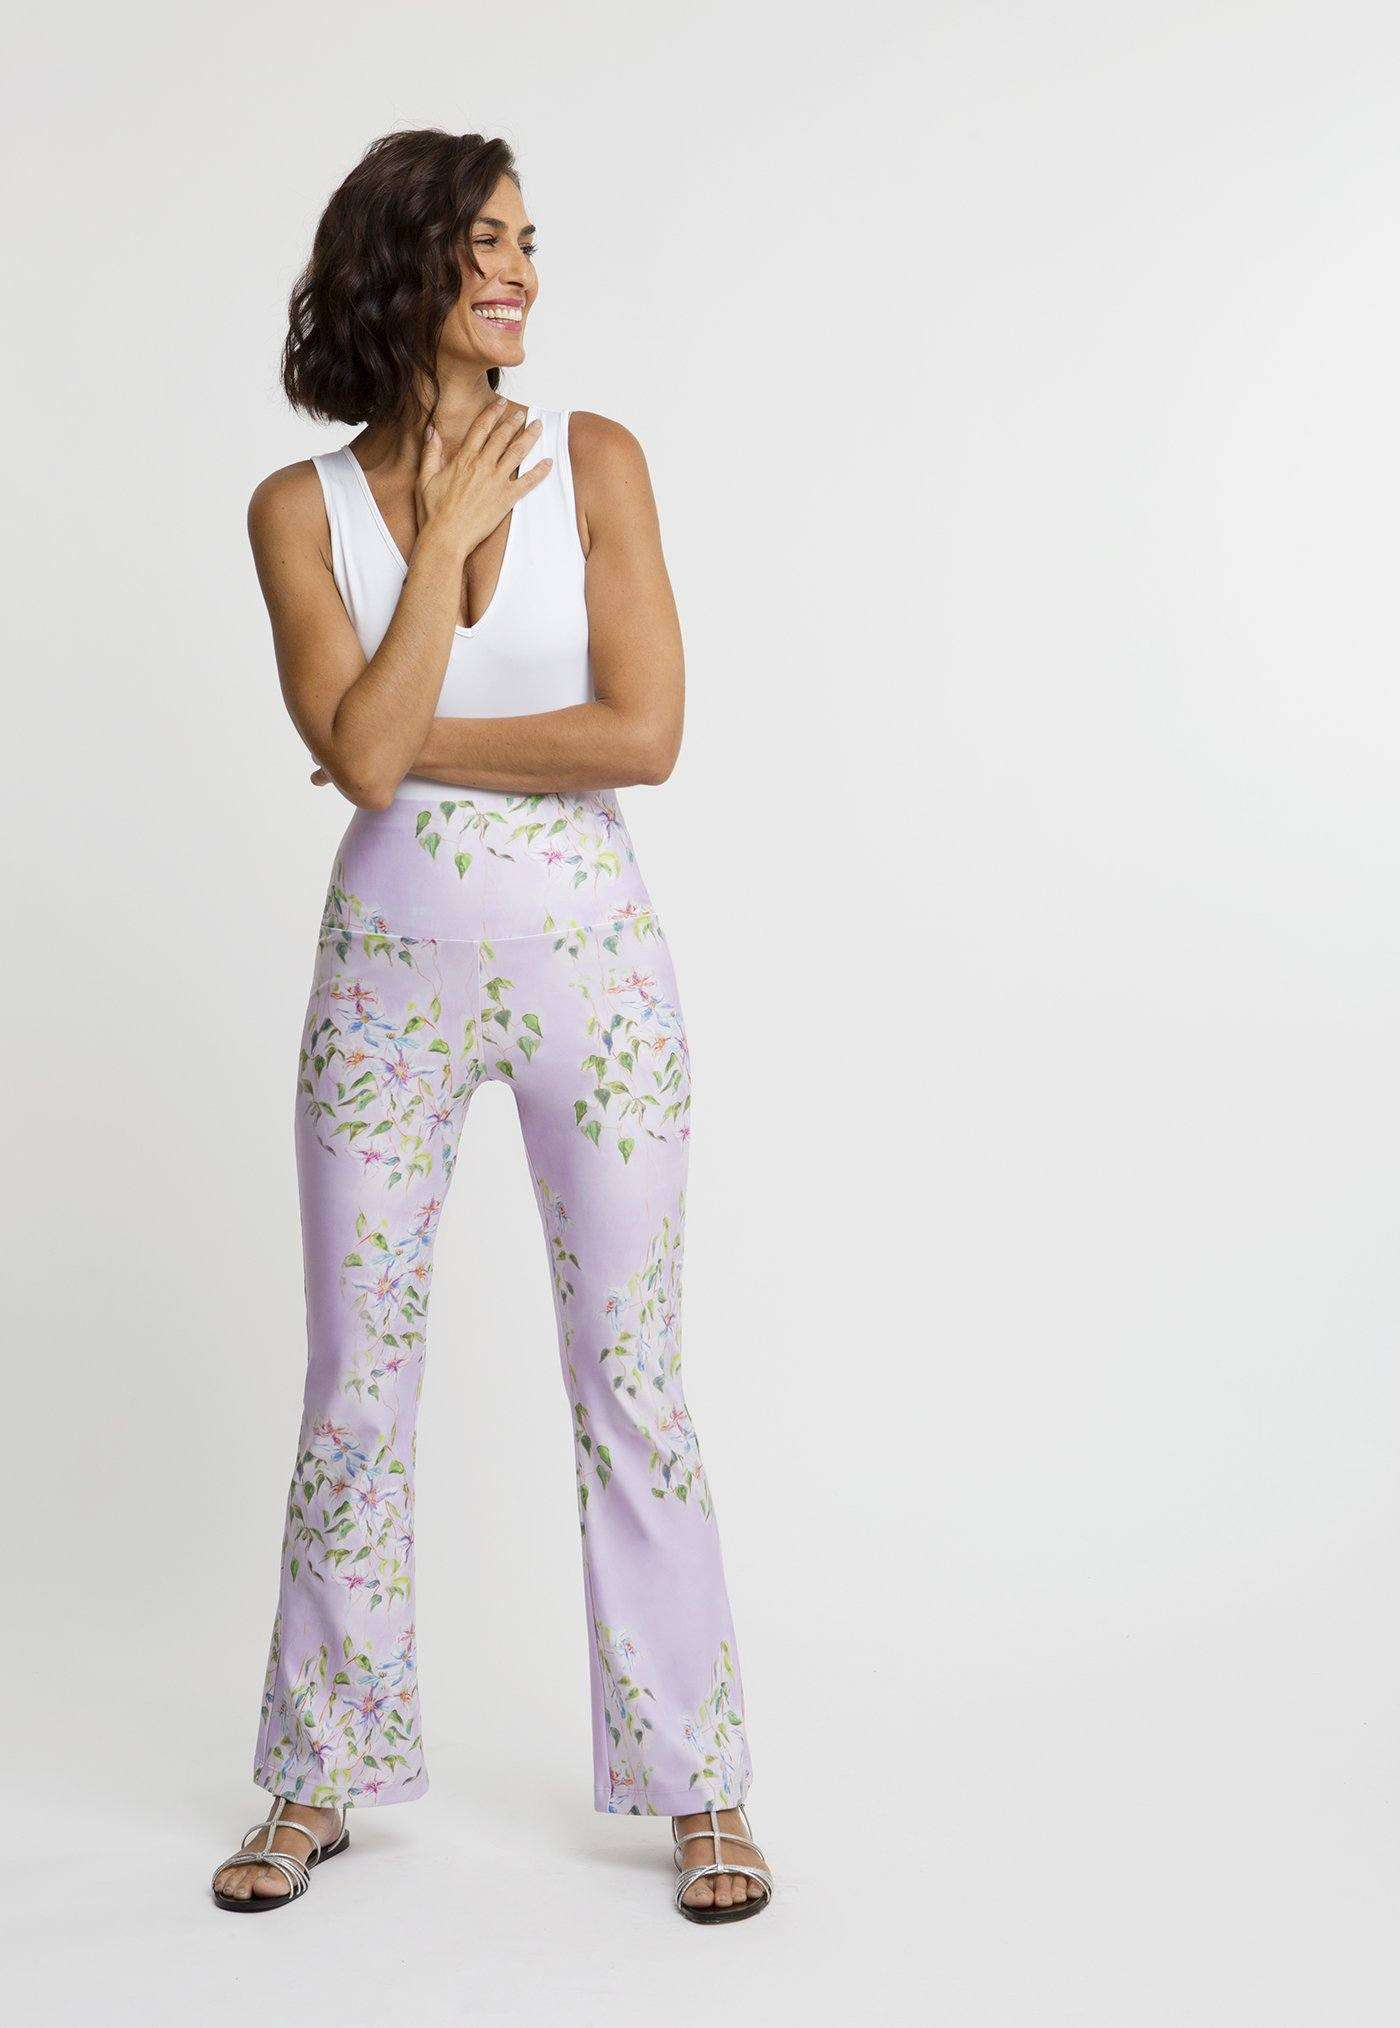 Elaine Stretch Pant in Sagaponack front view